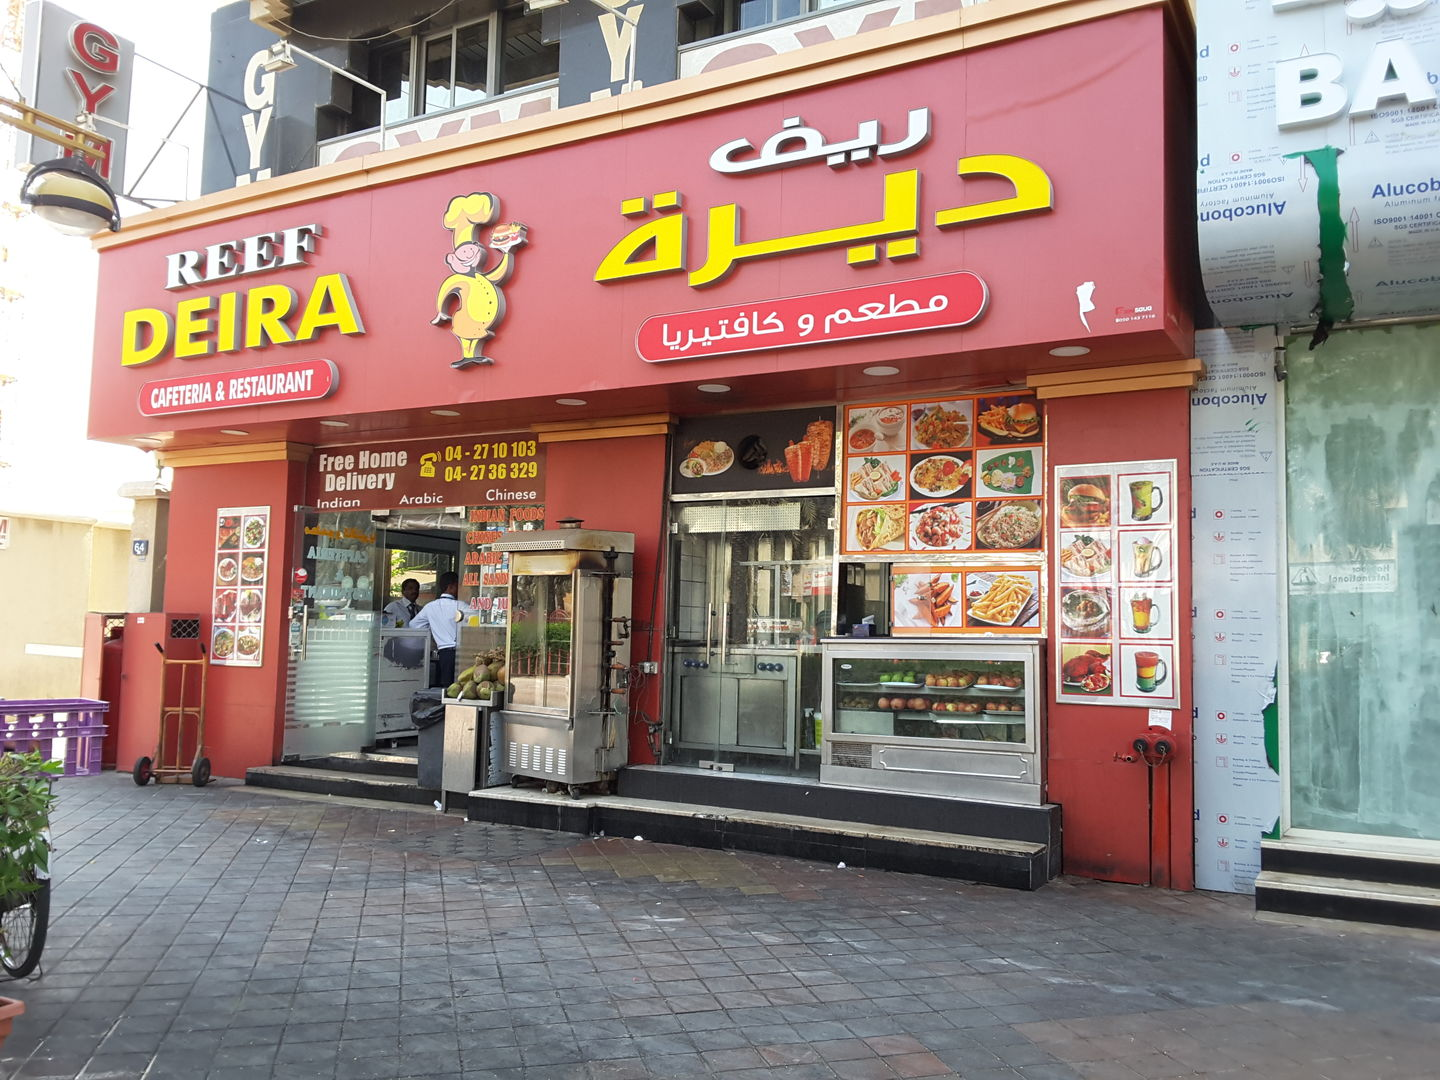 HiDubai-business-reef-deira-cafeteria-and-restaurant-food-beverage-cafeterias-al-muteena-dubai-2